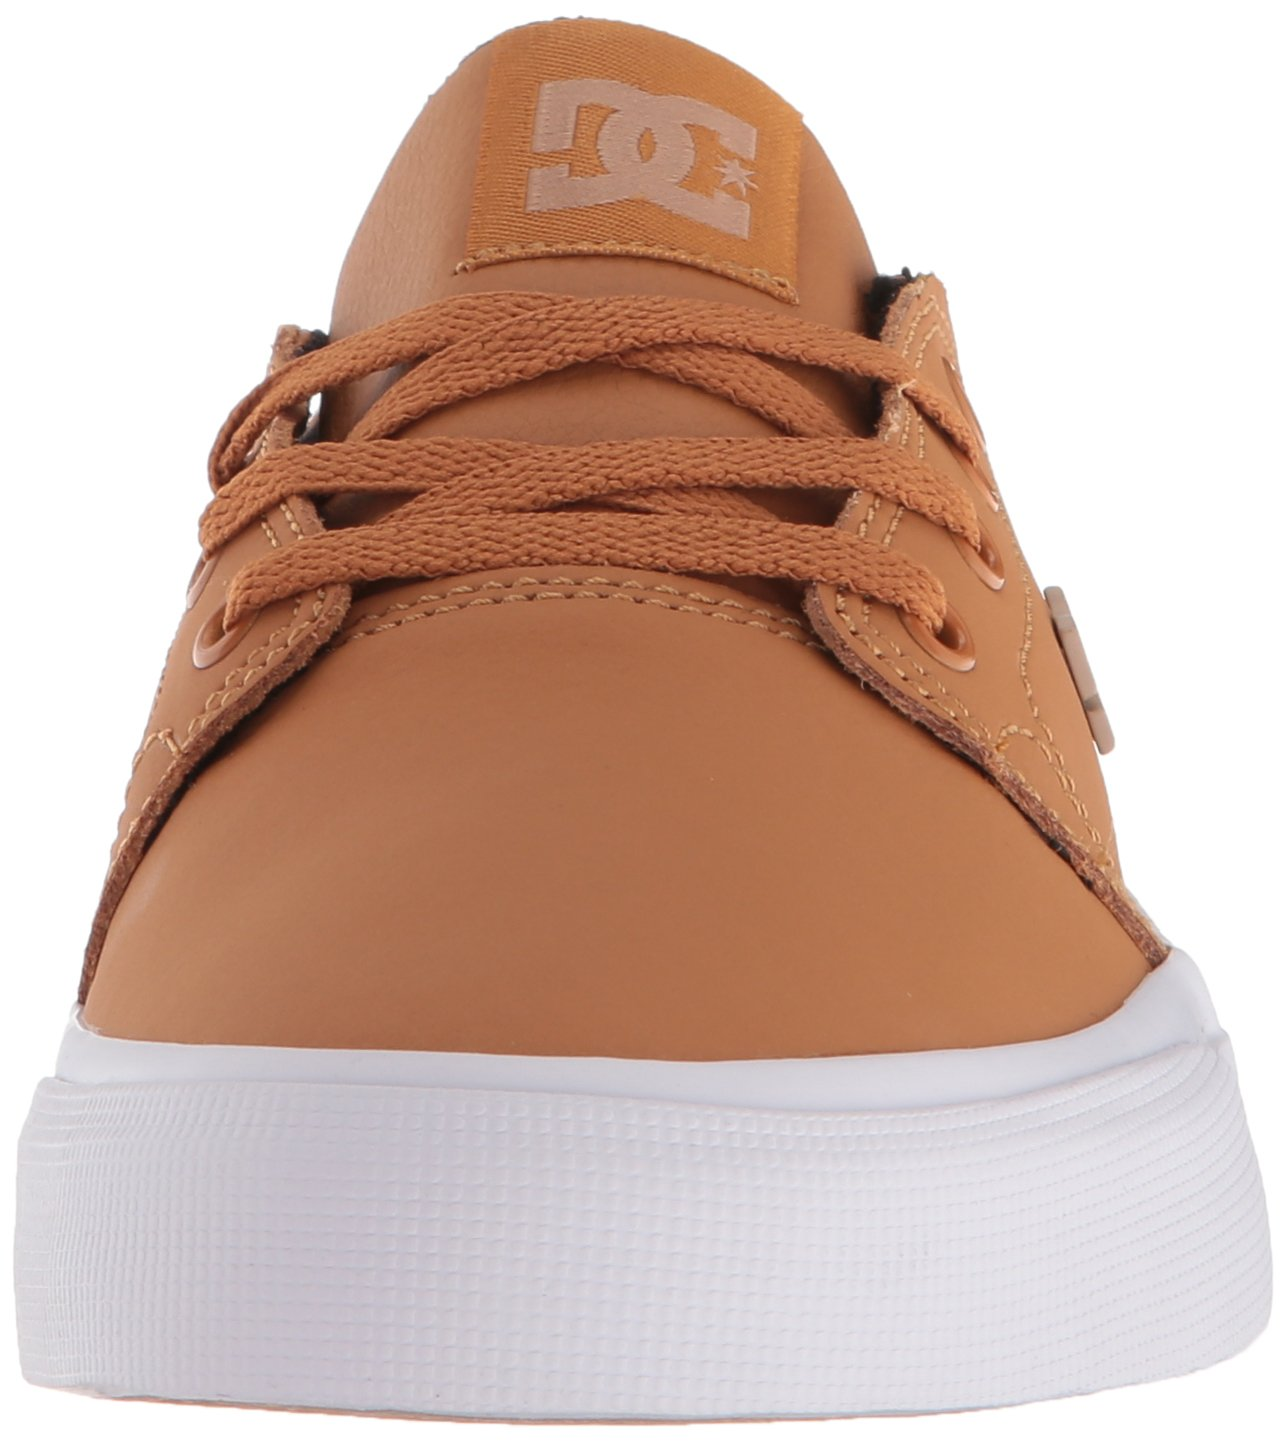 DC Women's Trase SE Skateboarding Shoe B077V923DX 6.5 M US|Wheat